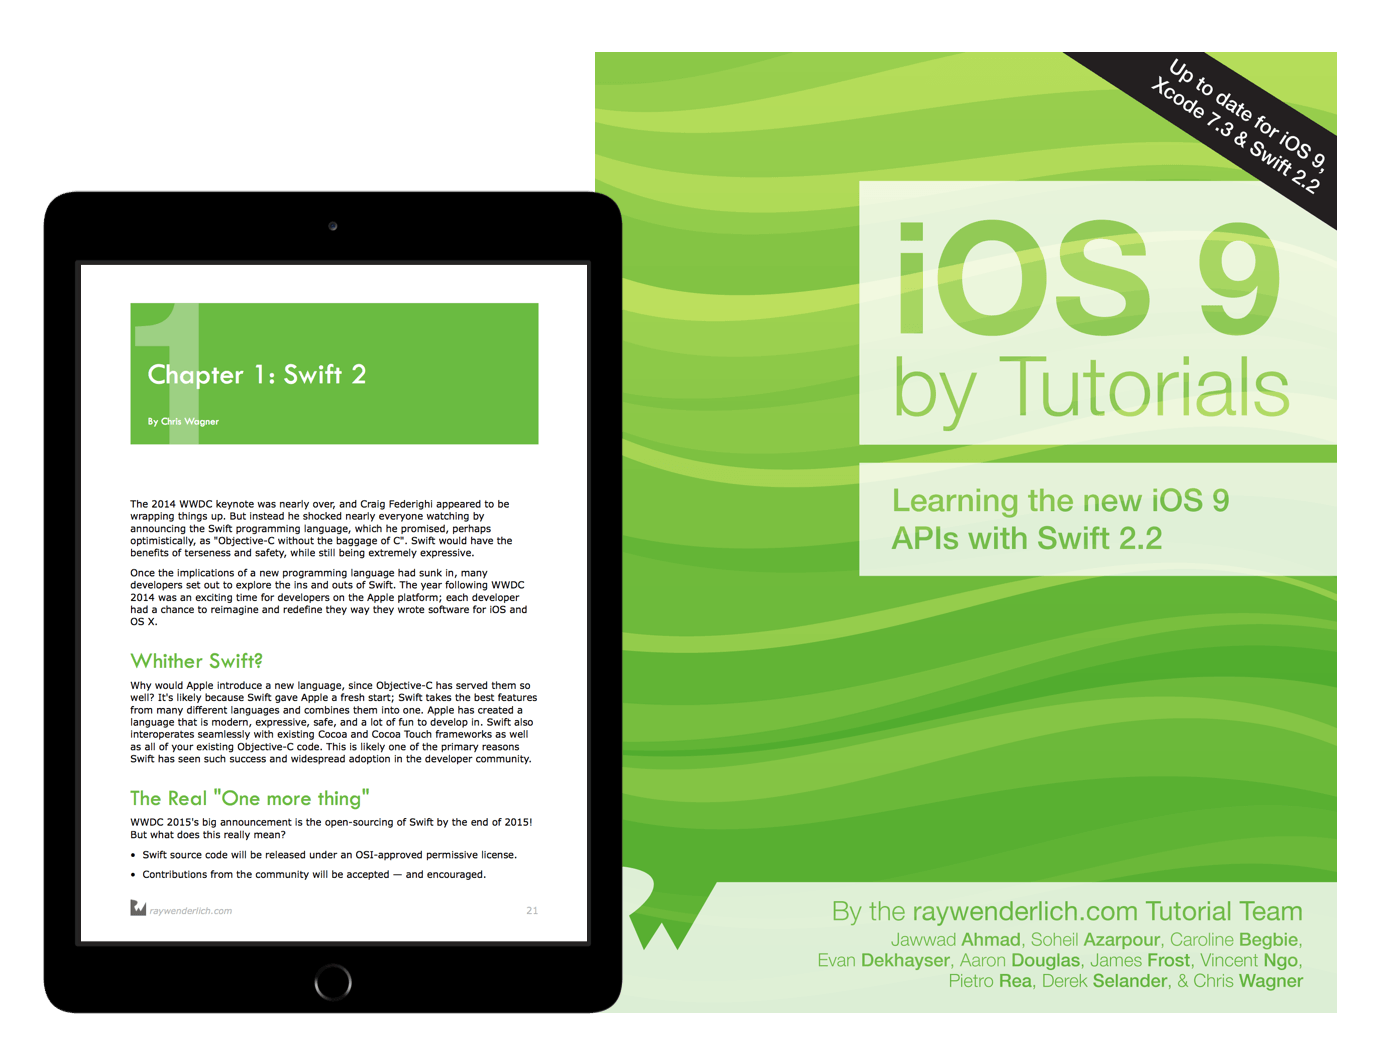 iOS 9 by Tutorials book cover